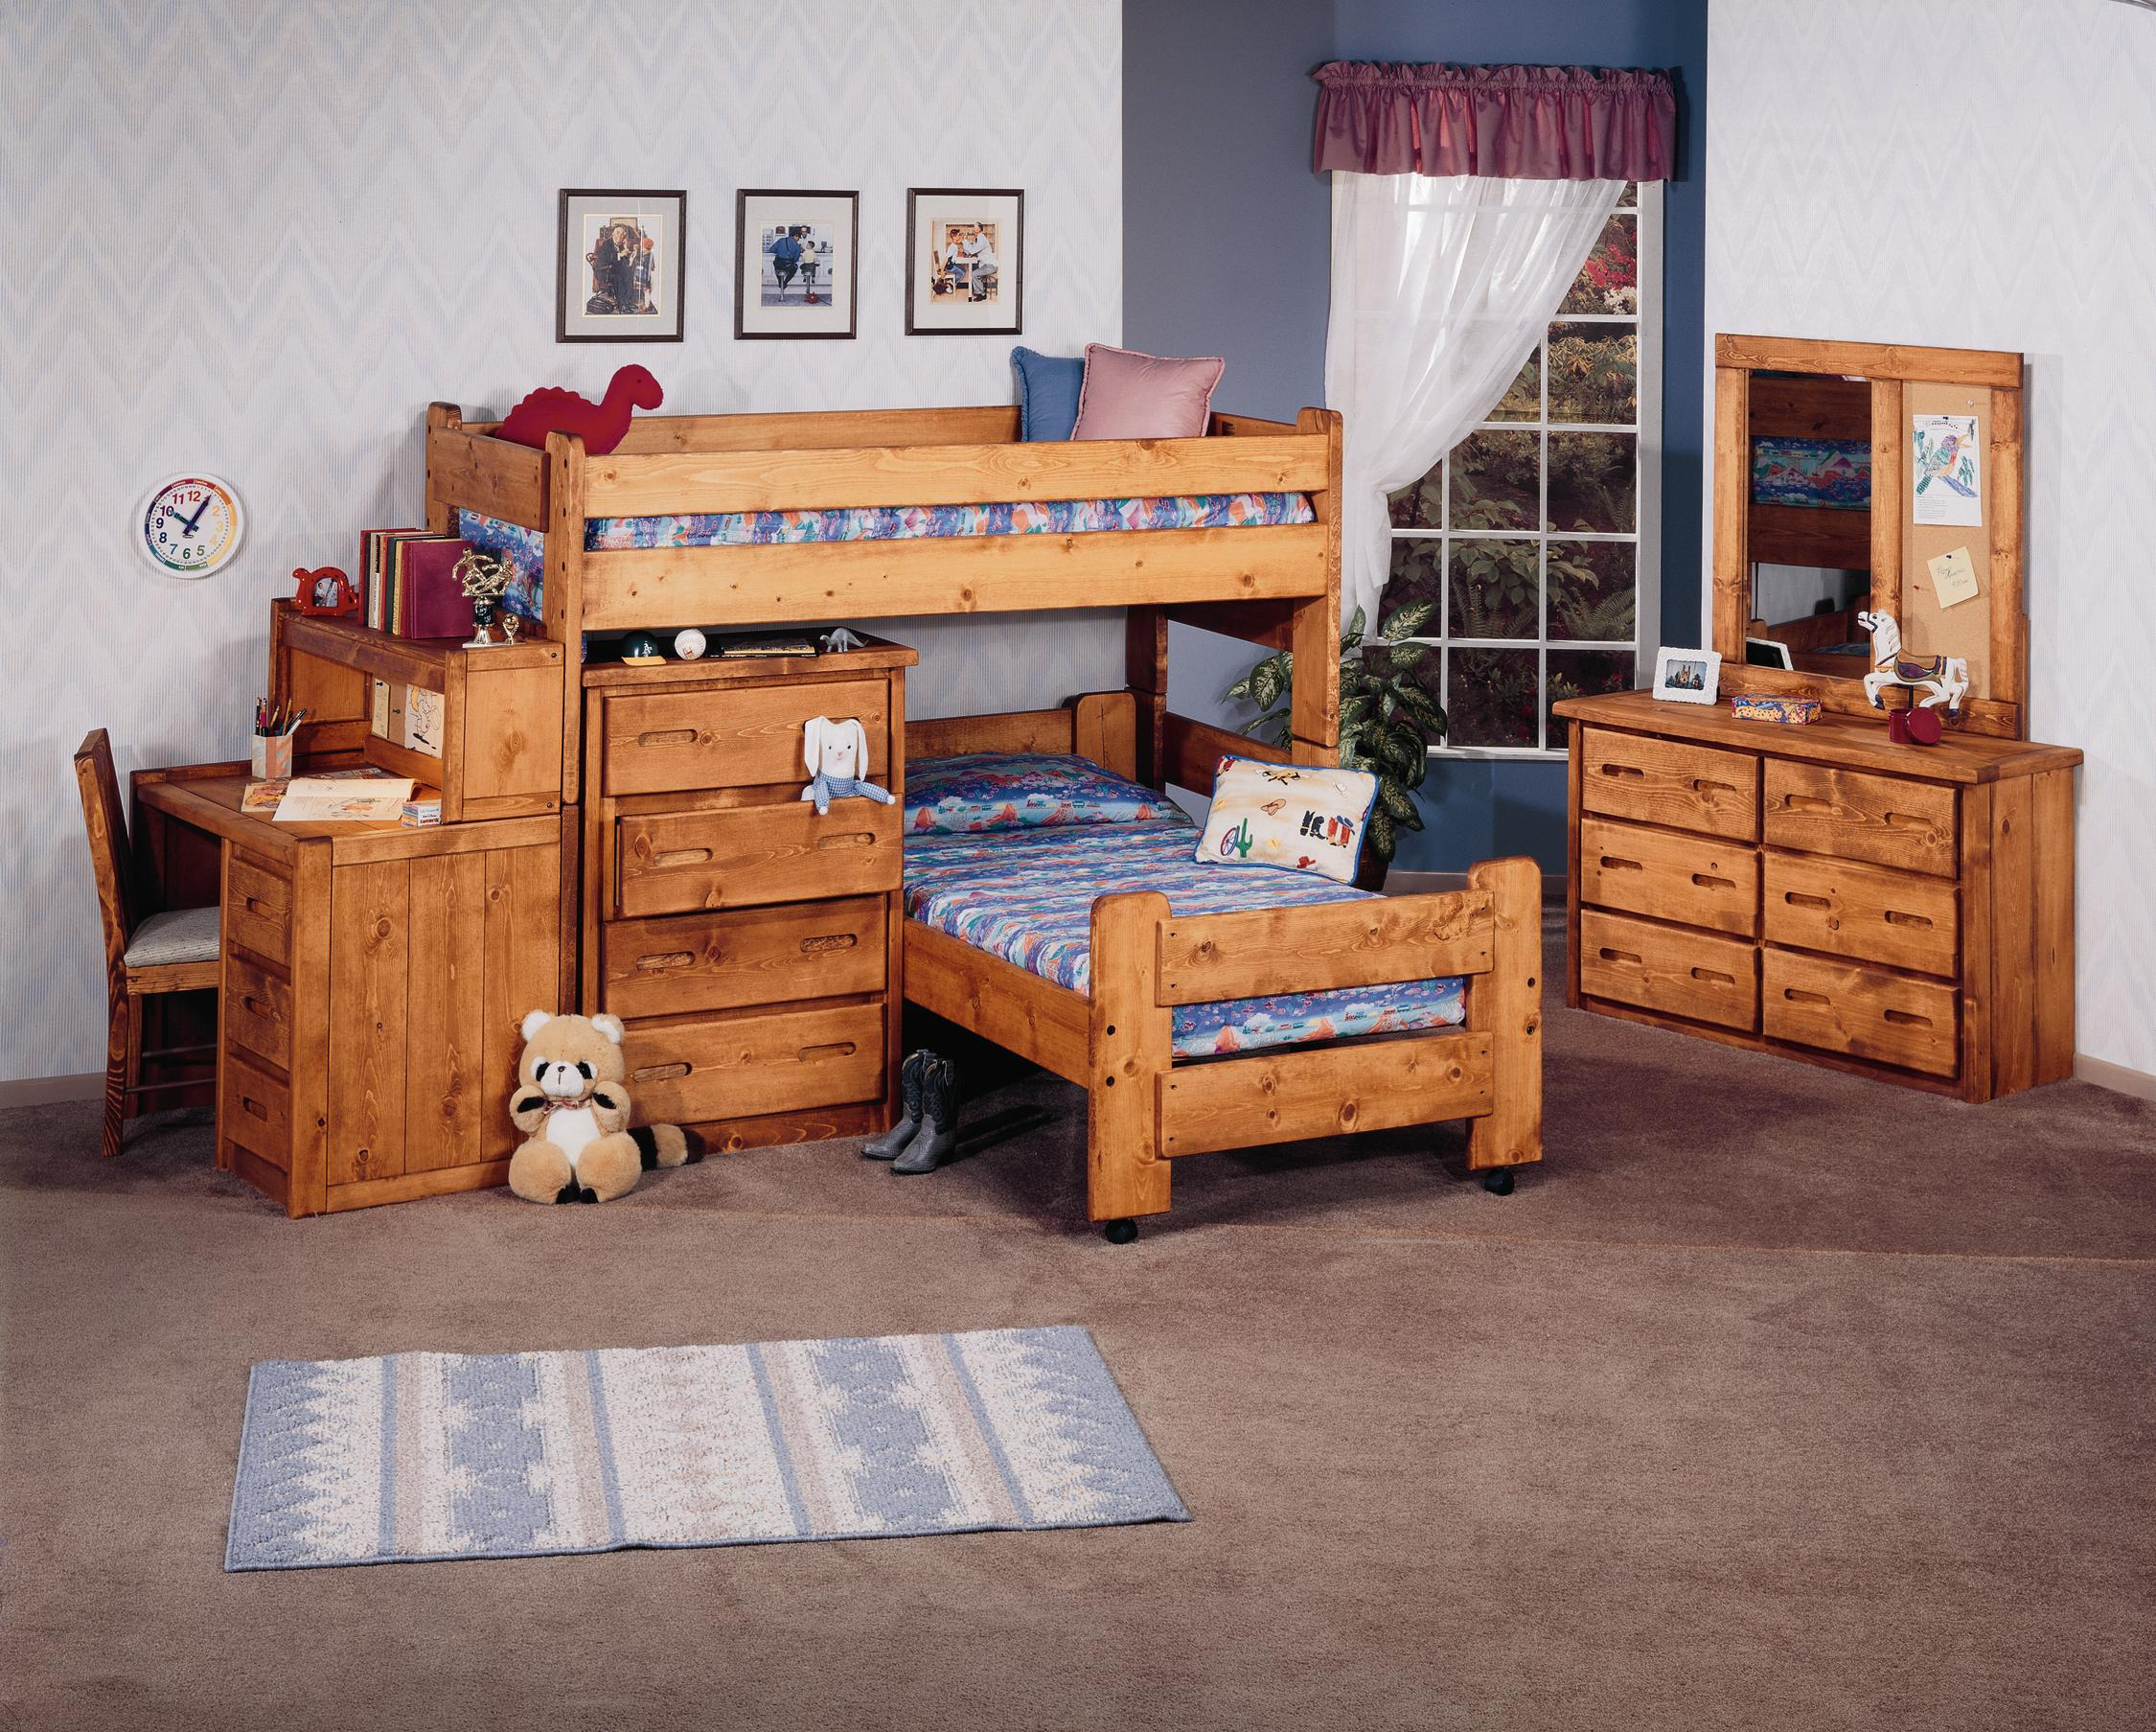 trendwood bunkhouse twin twin roundup modular loft bed with trendwood bunkhouse twin twin roundup modular loft bed with dresser and shelf units sparks homestore home furnishings direct loft beds thatcher